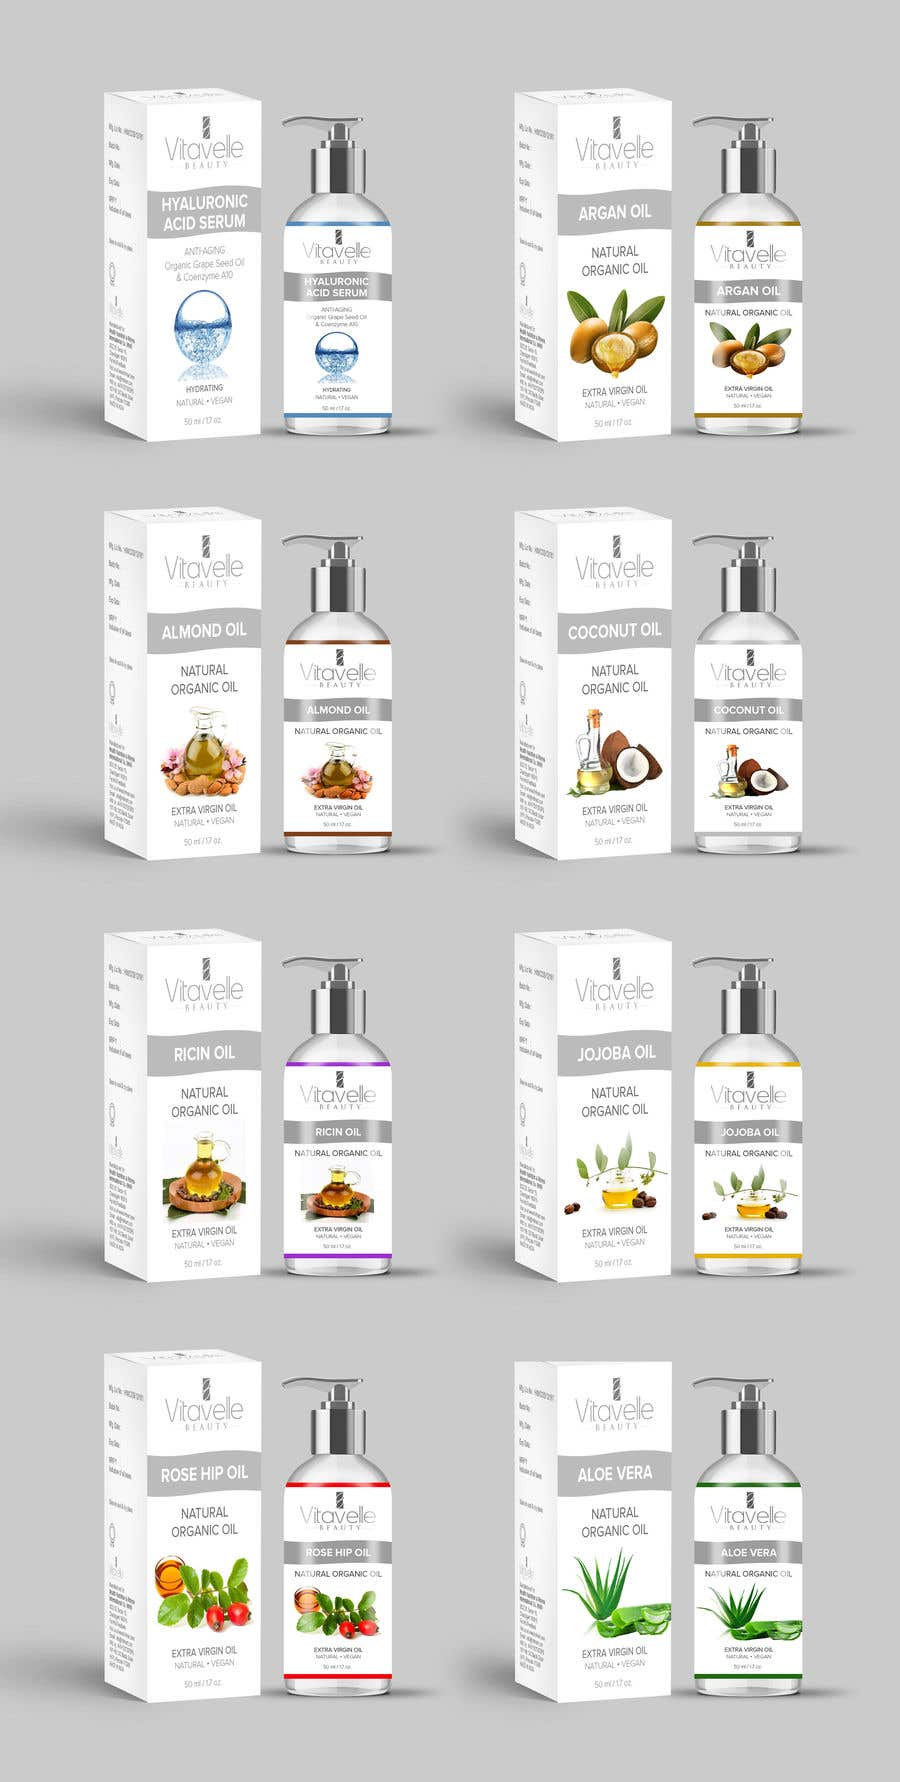 Bài tham dự cuộc thi #                                        40                                      cho                                         Create Product Label and Packaging Designs